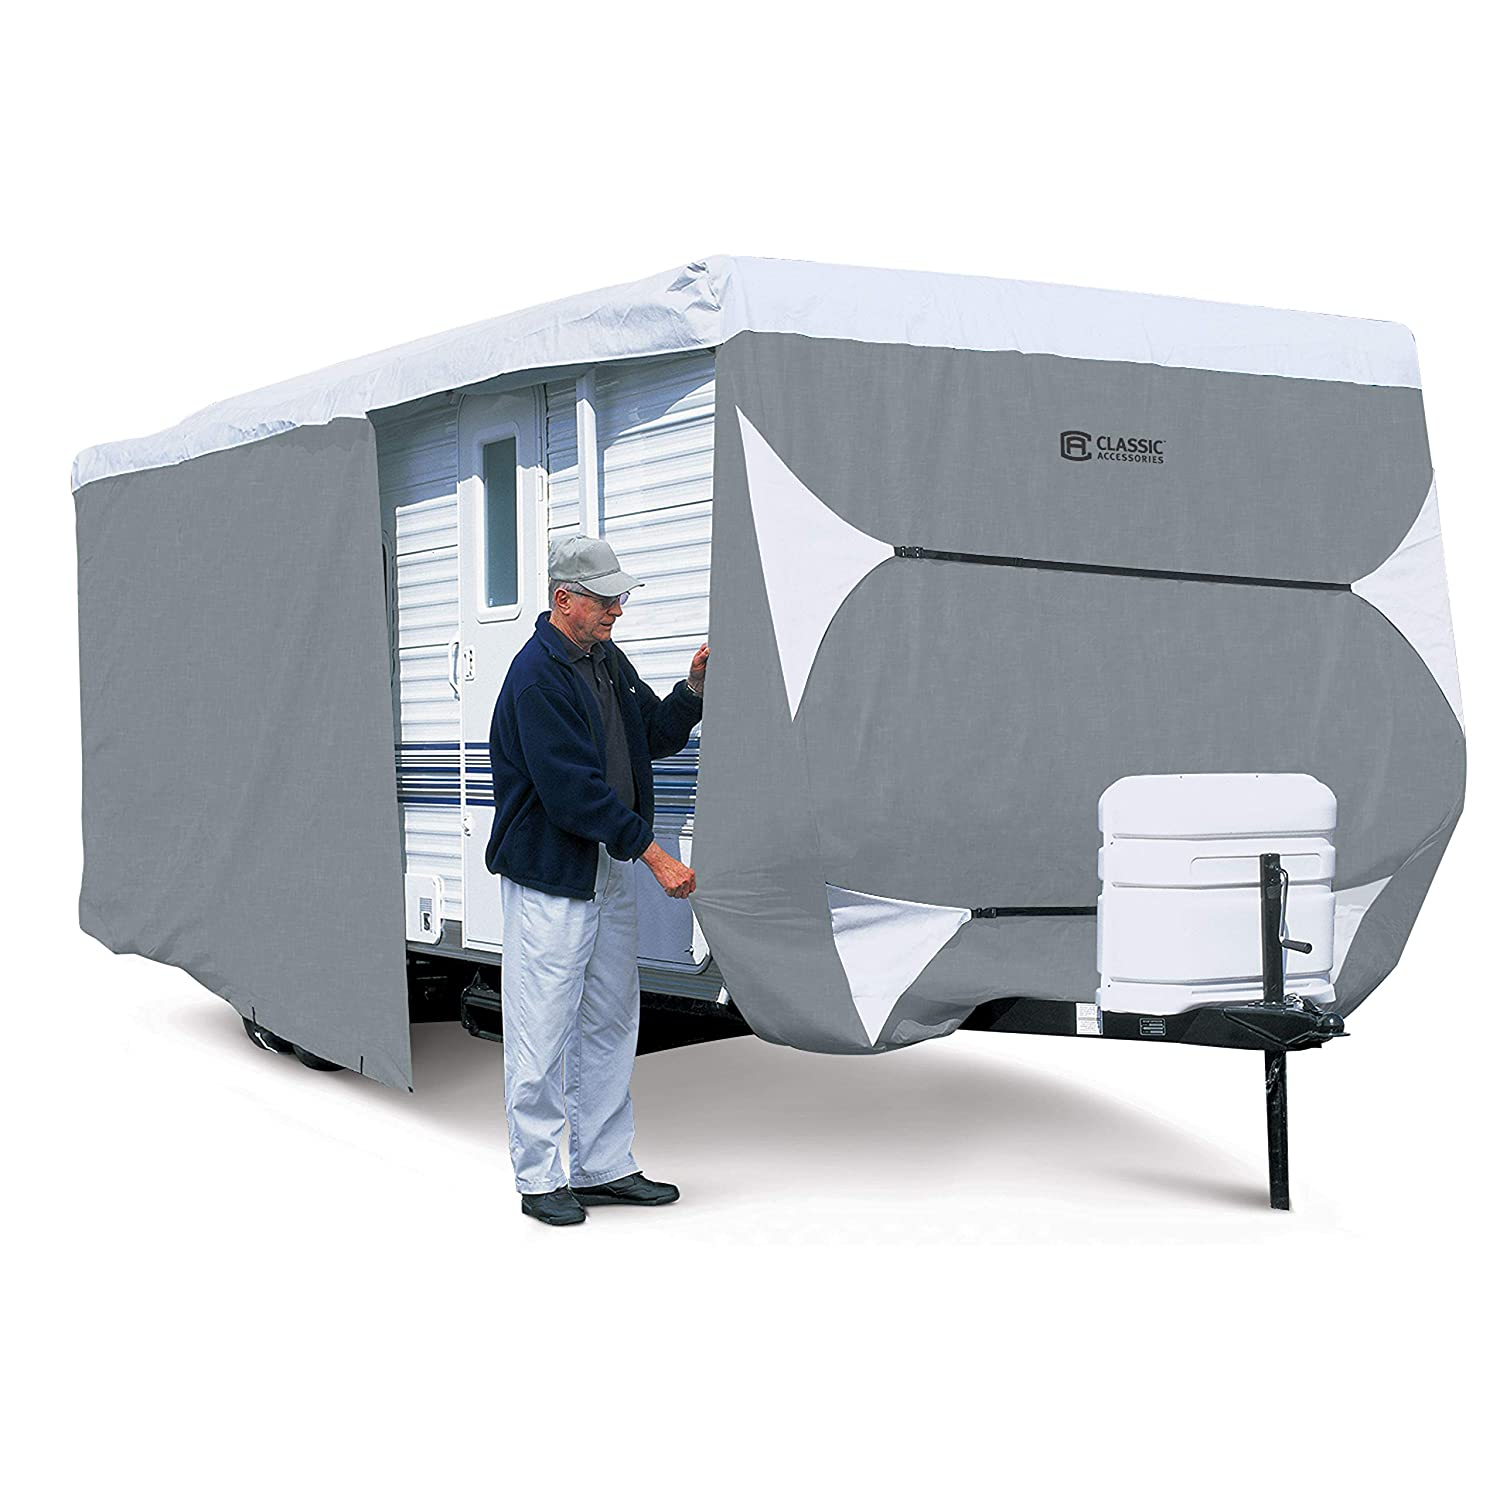 Classic Accessories 80-351-303101-RT Overdrive PolyPro 3 Deluxe Travel Trailer Cover, Fits 15' - 18' Fits 15' - 18'